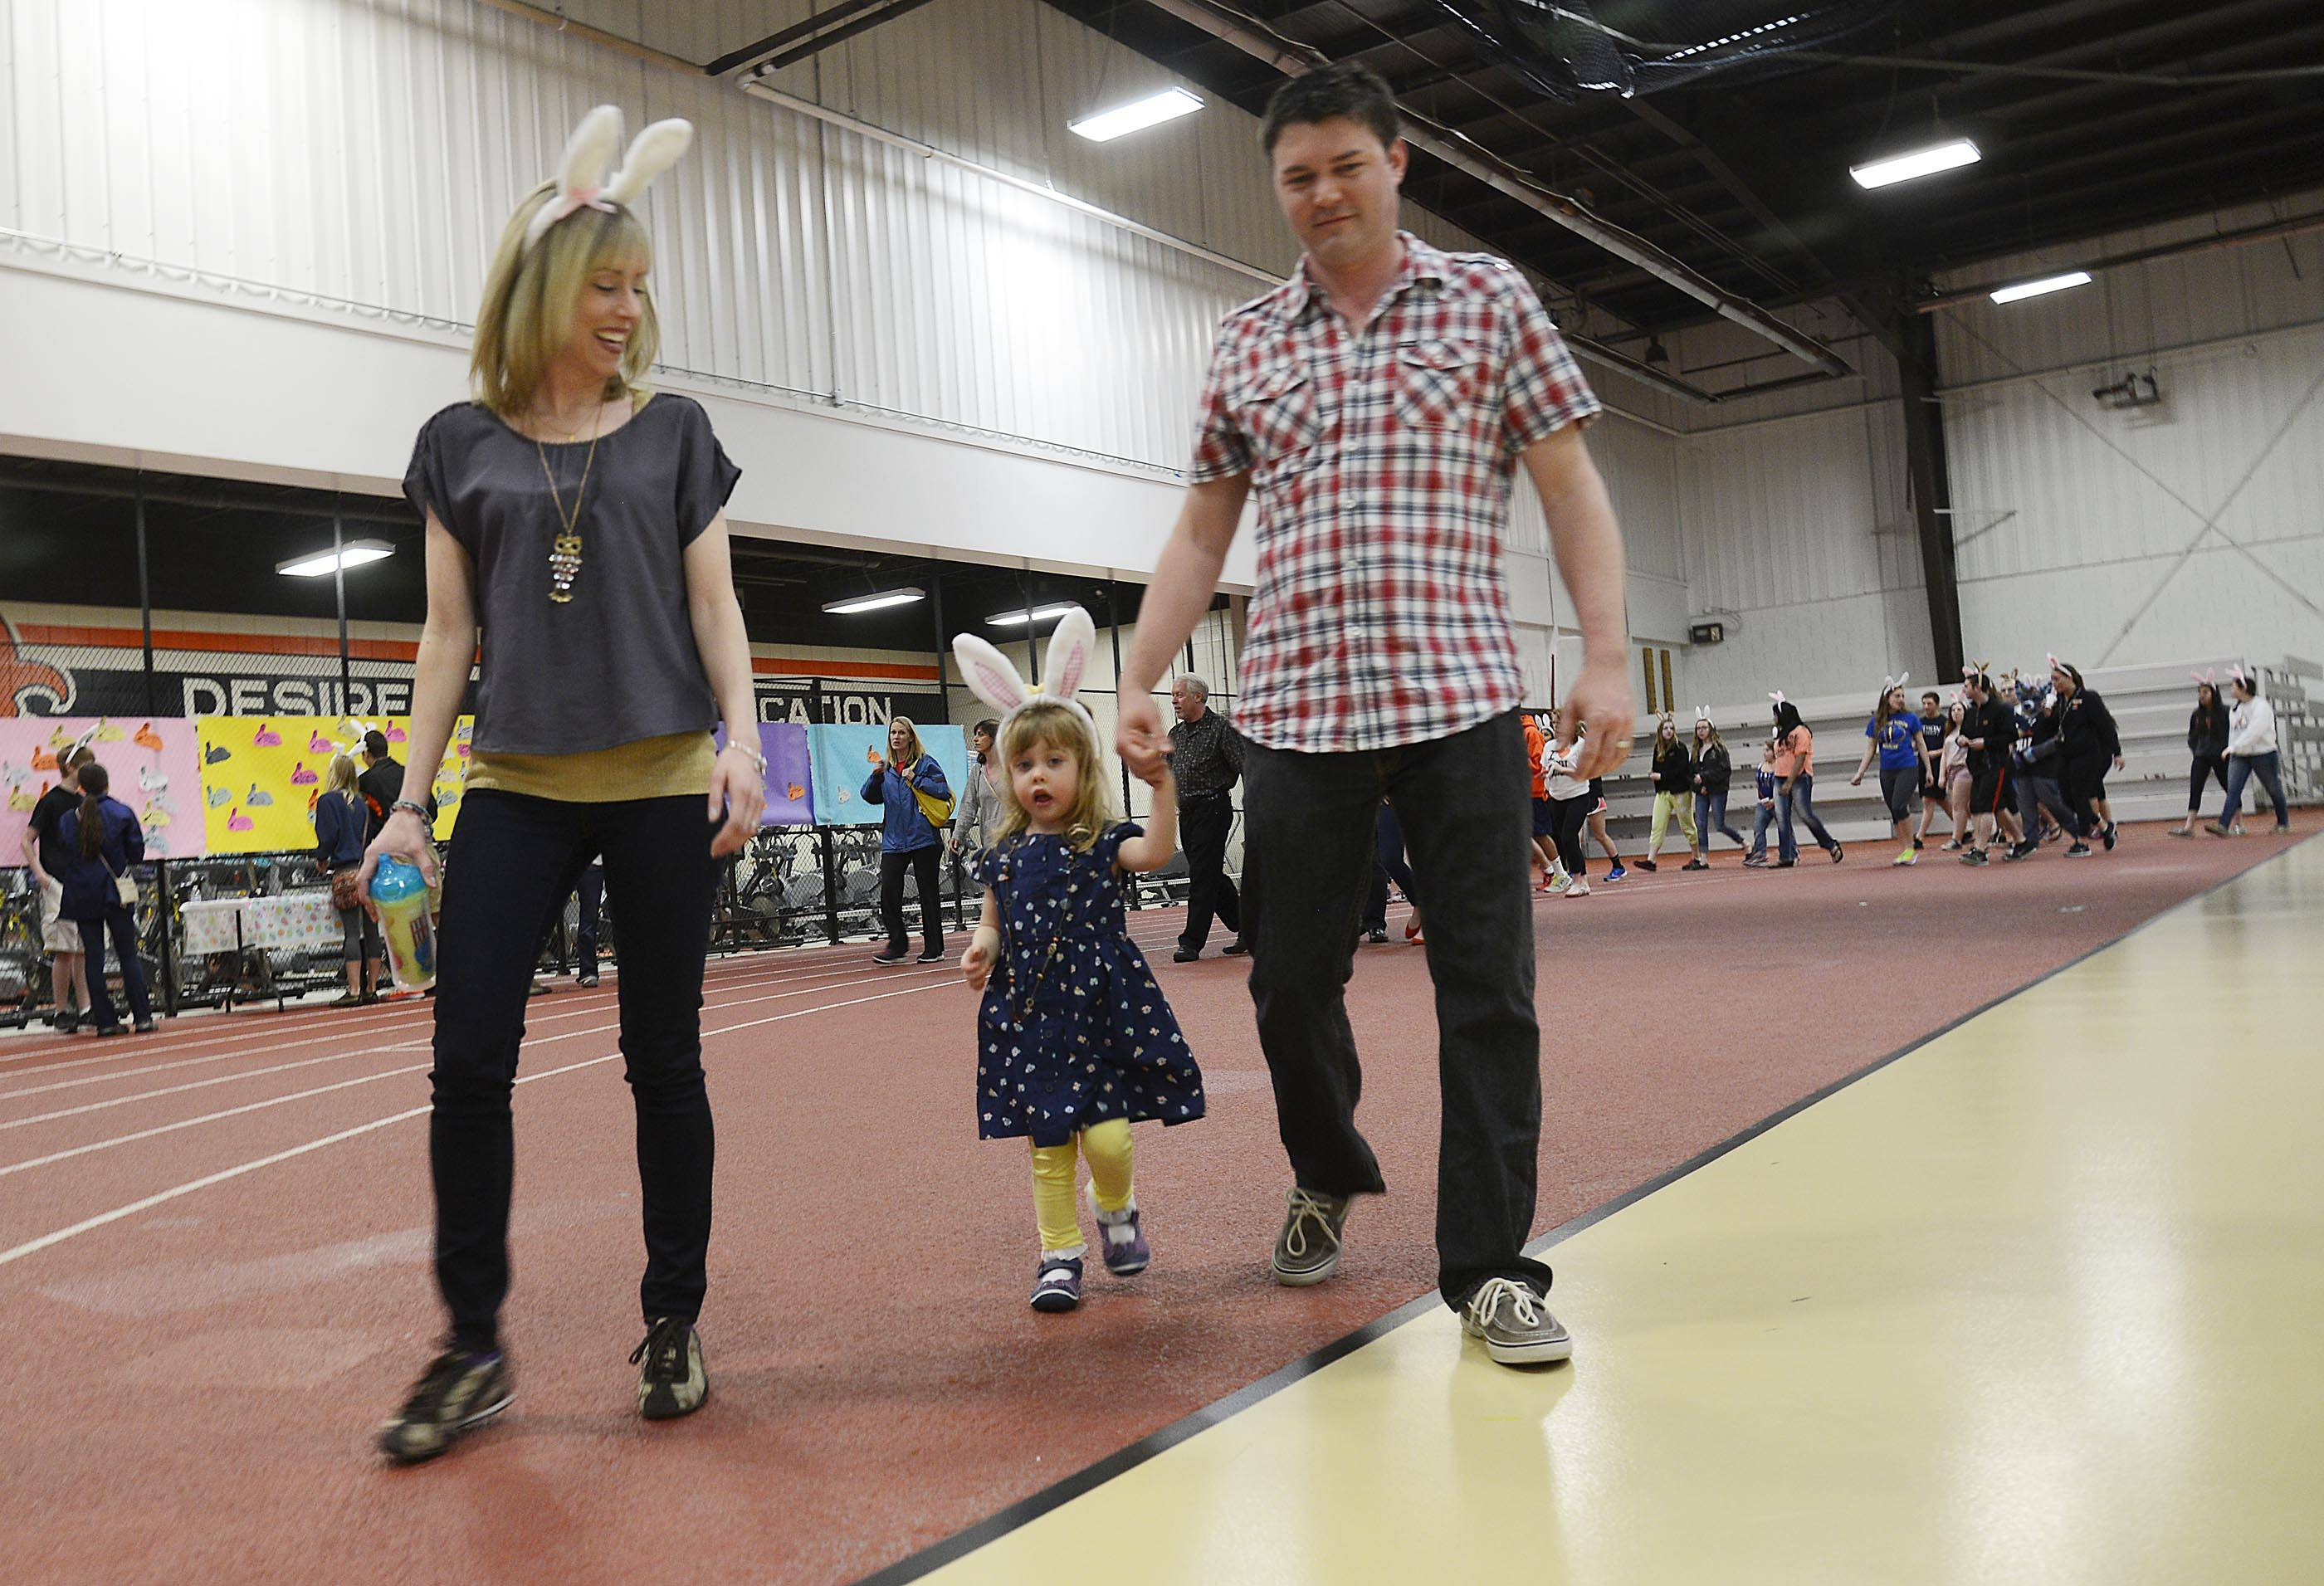 Caitlin Cox, almost 3, walks with her parents, Meghan and Jeff, during a Juvenile Arthritis benefit walk organized by the St. Charles East High School student council Sunday at the school's Sports Center. She was diagnosed with juvenile arthritis last September.